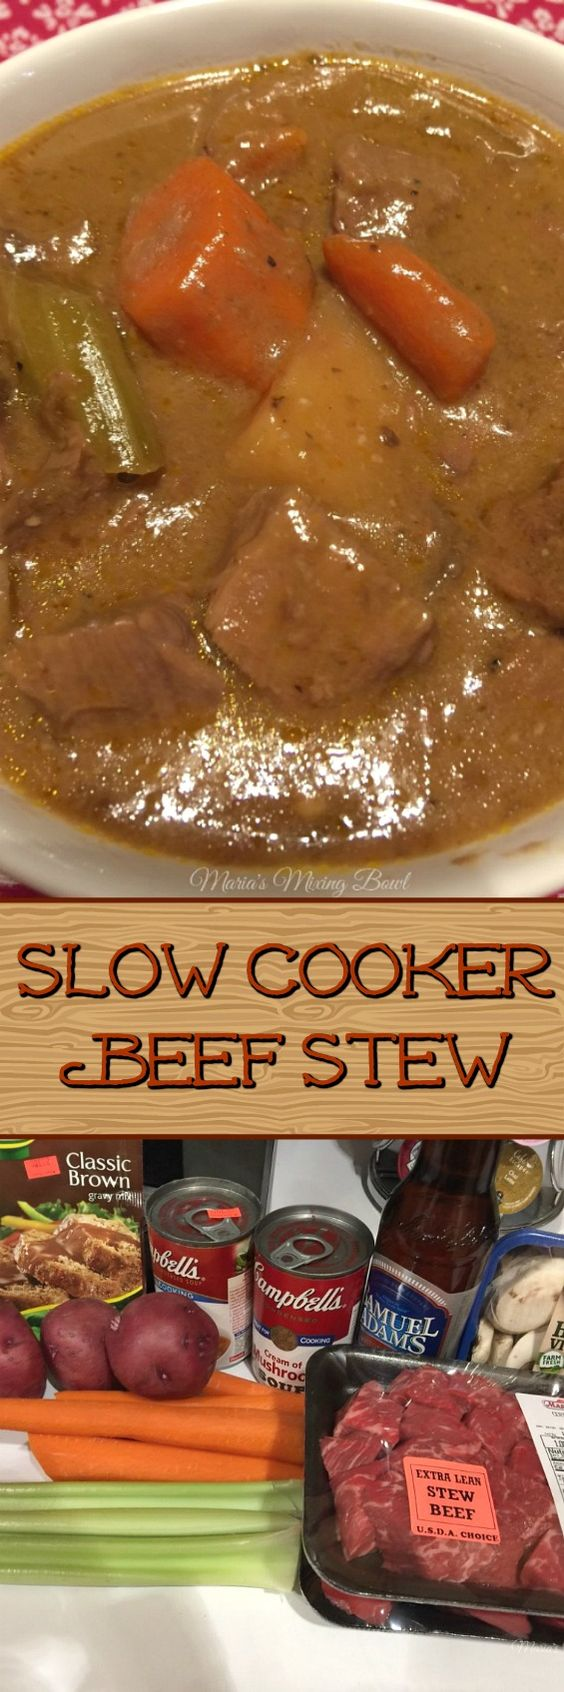 Slow Cooker Beef Stew - Everyone's favorite comfort food.  On a chilly night there is nothing better than a stew or soup. Packed with delicious flavor, vegetables and tender beef. #mariasmixingbowl #beefstew #sloww cooker